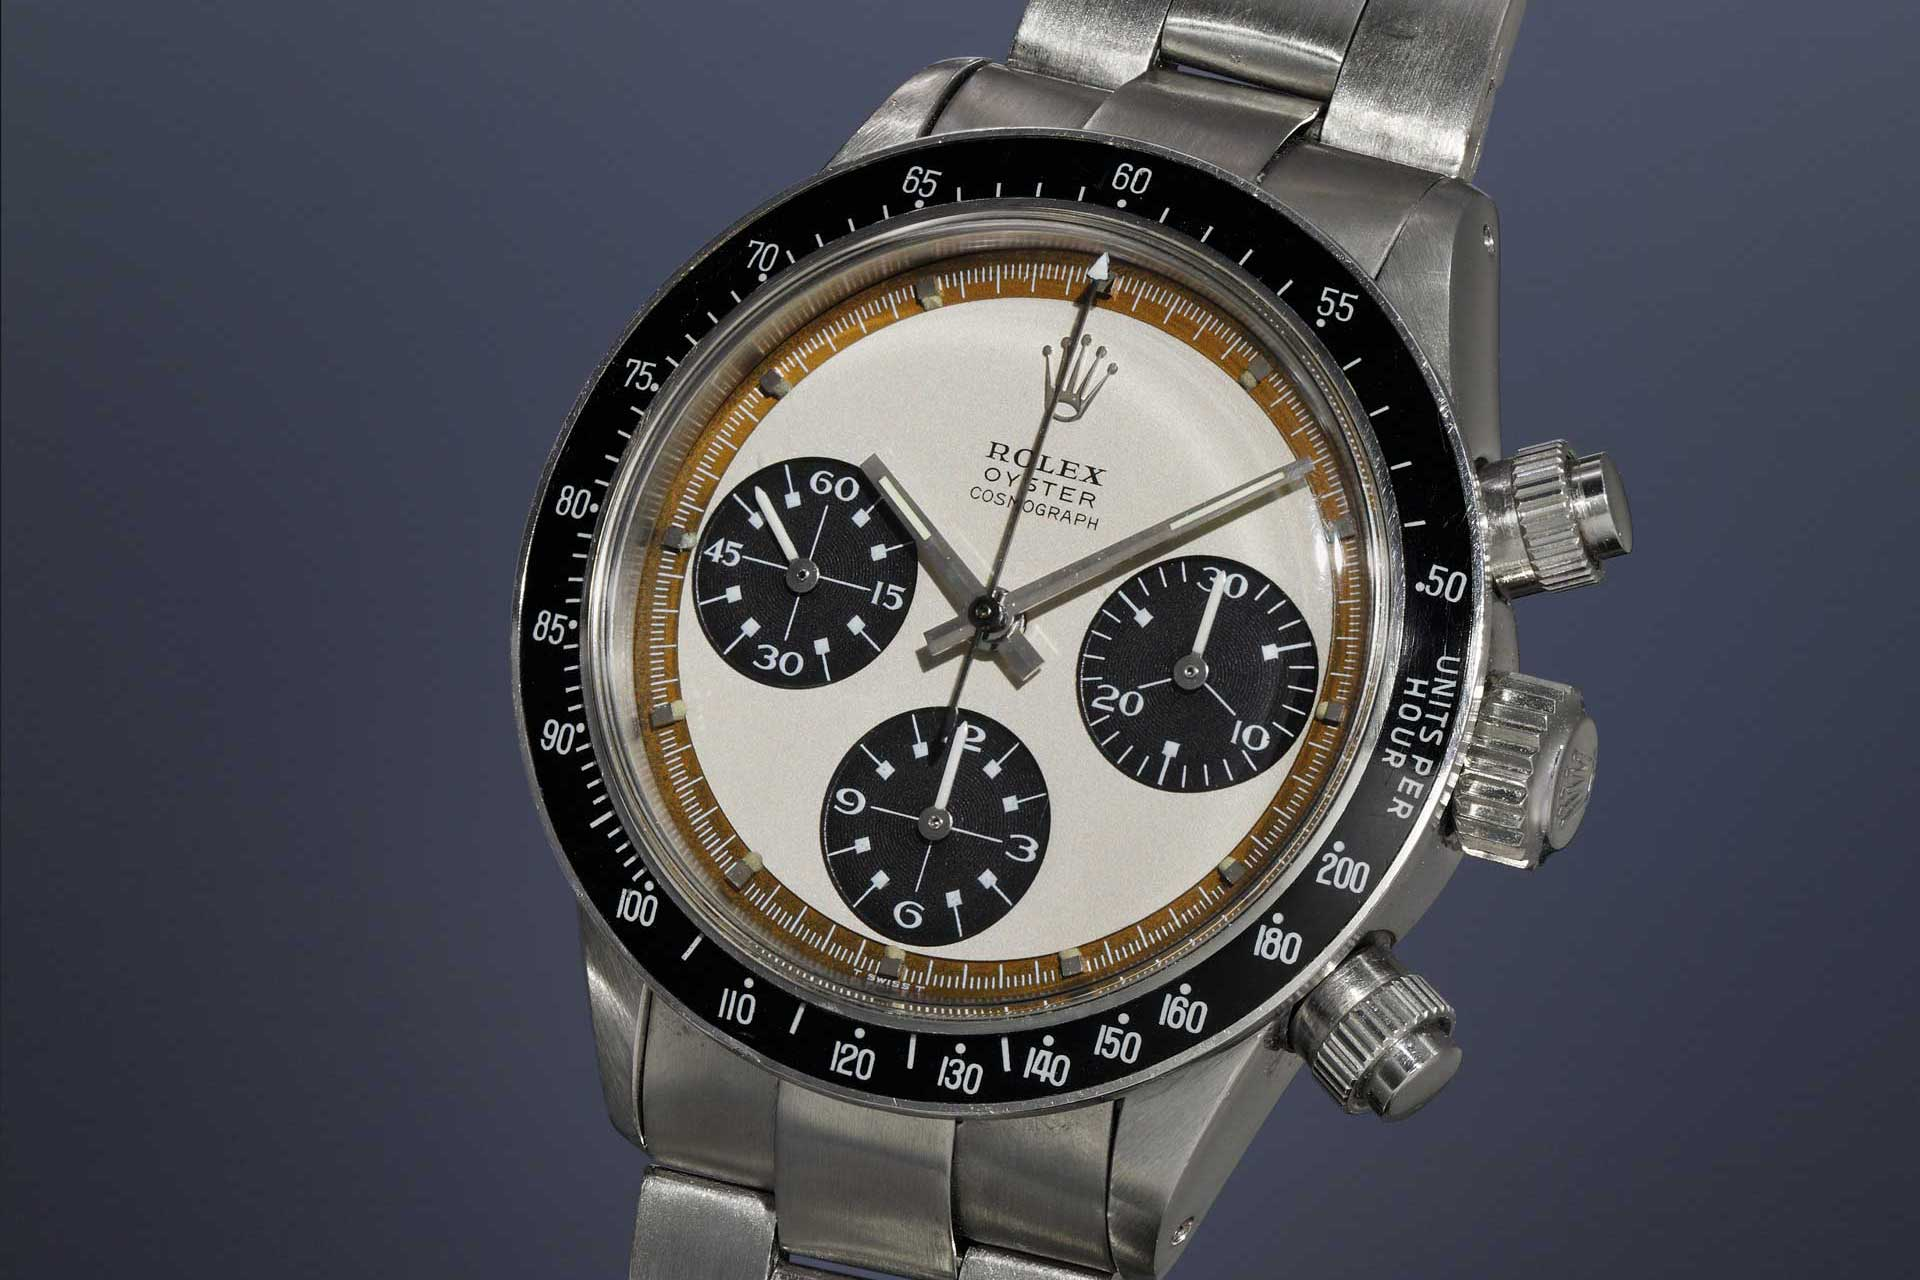 Discussion on this topic: There's a 1965 Rolex Paul Newman Daytona , theres-a-1965-rolex-paul-newman-daytona/